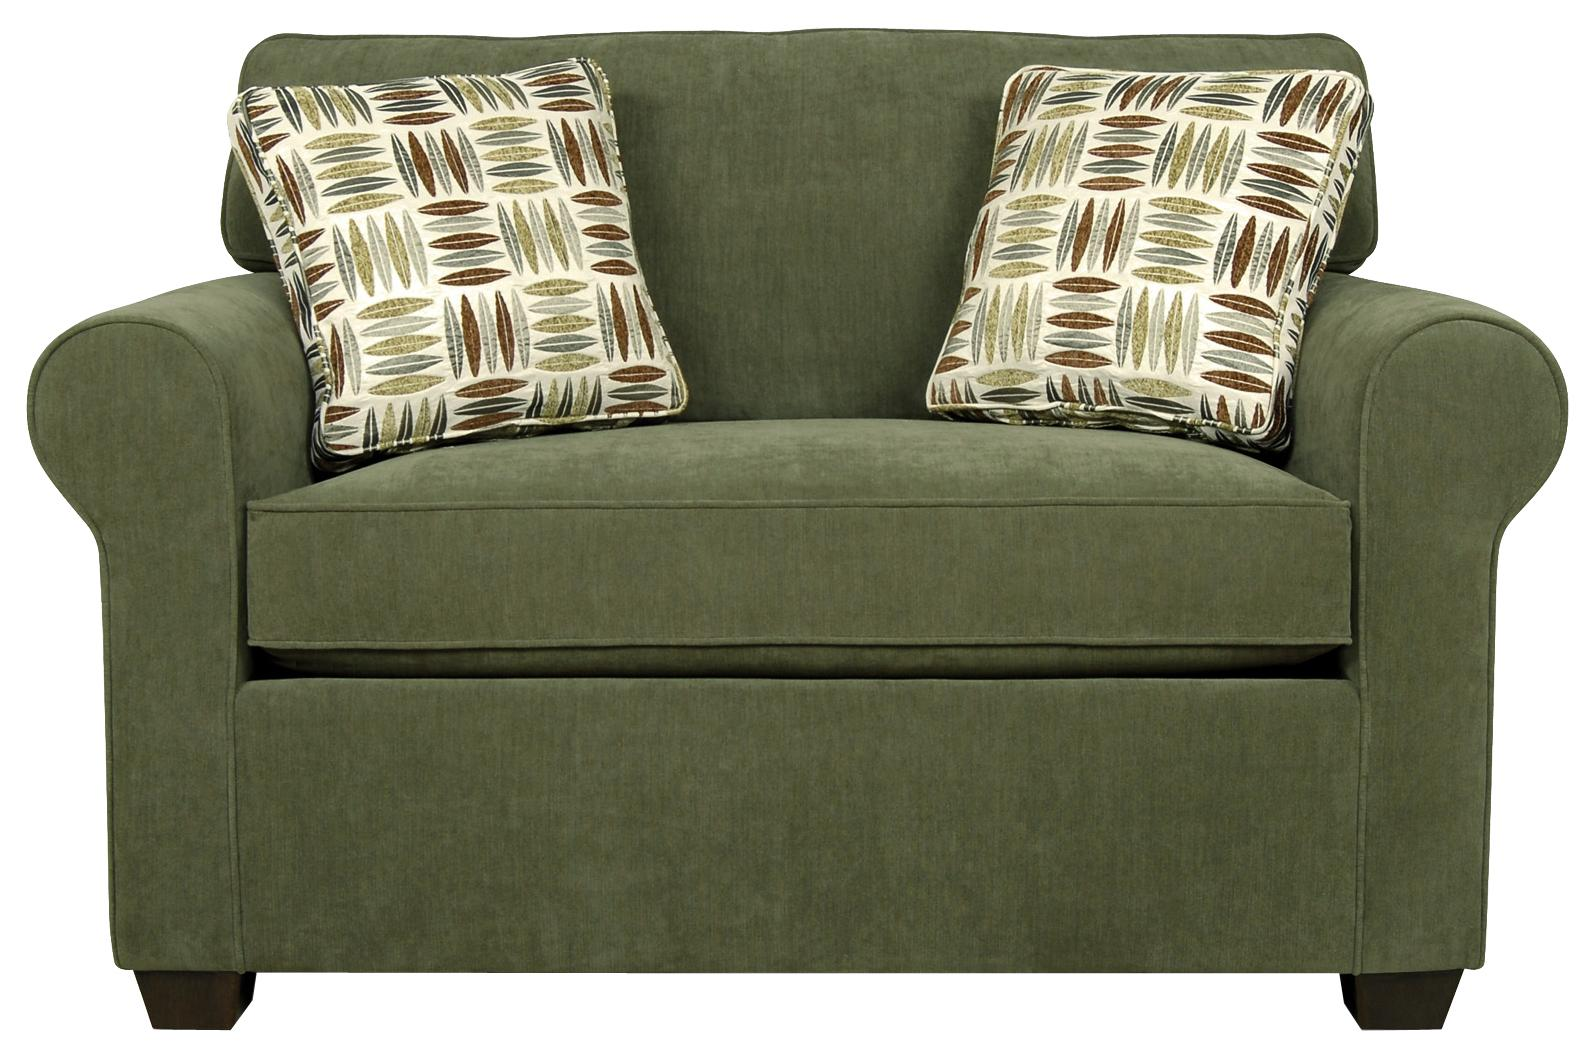 loveseat and chair a half small round cushions sleeper sofa beautiful